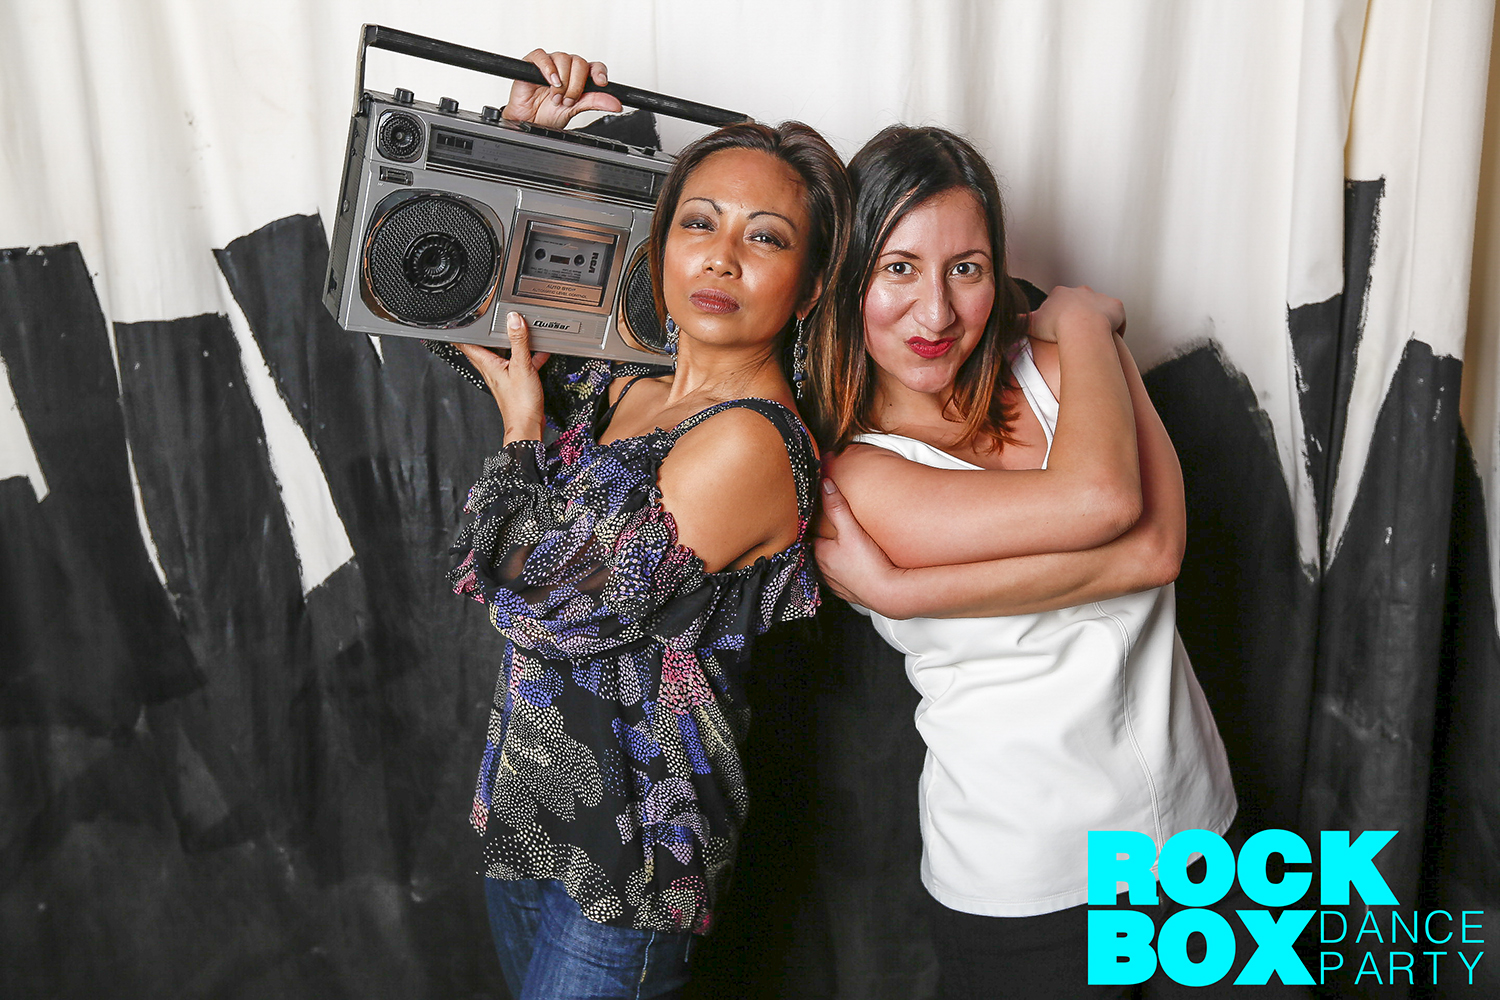 Rock box feb 2015-0112.jpg